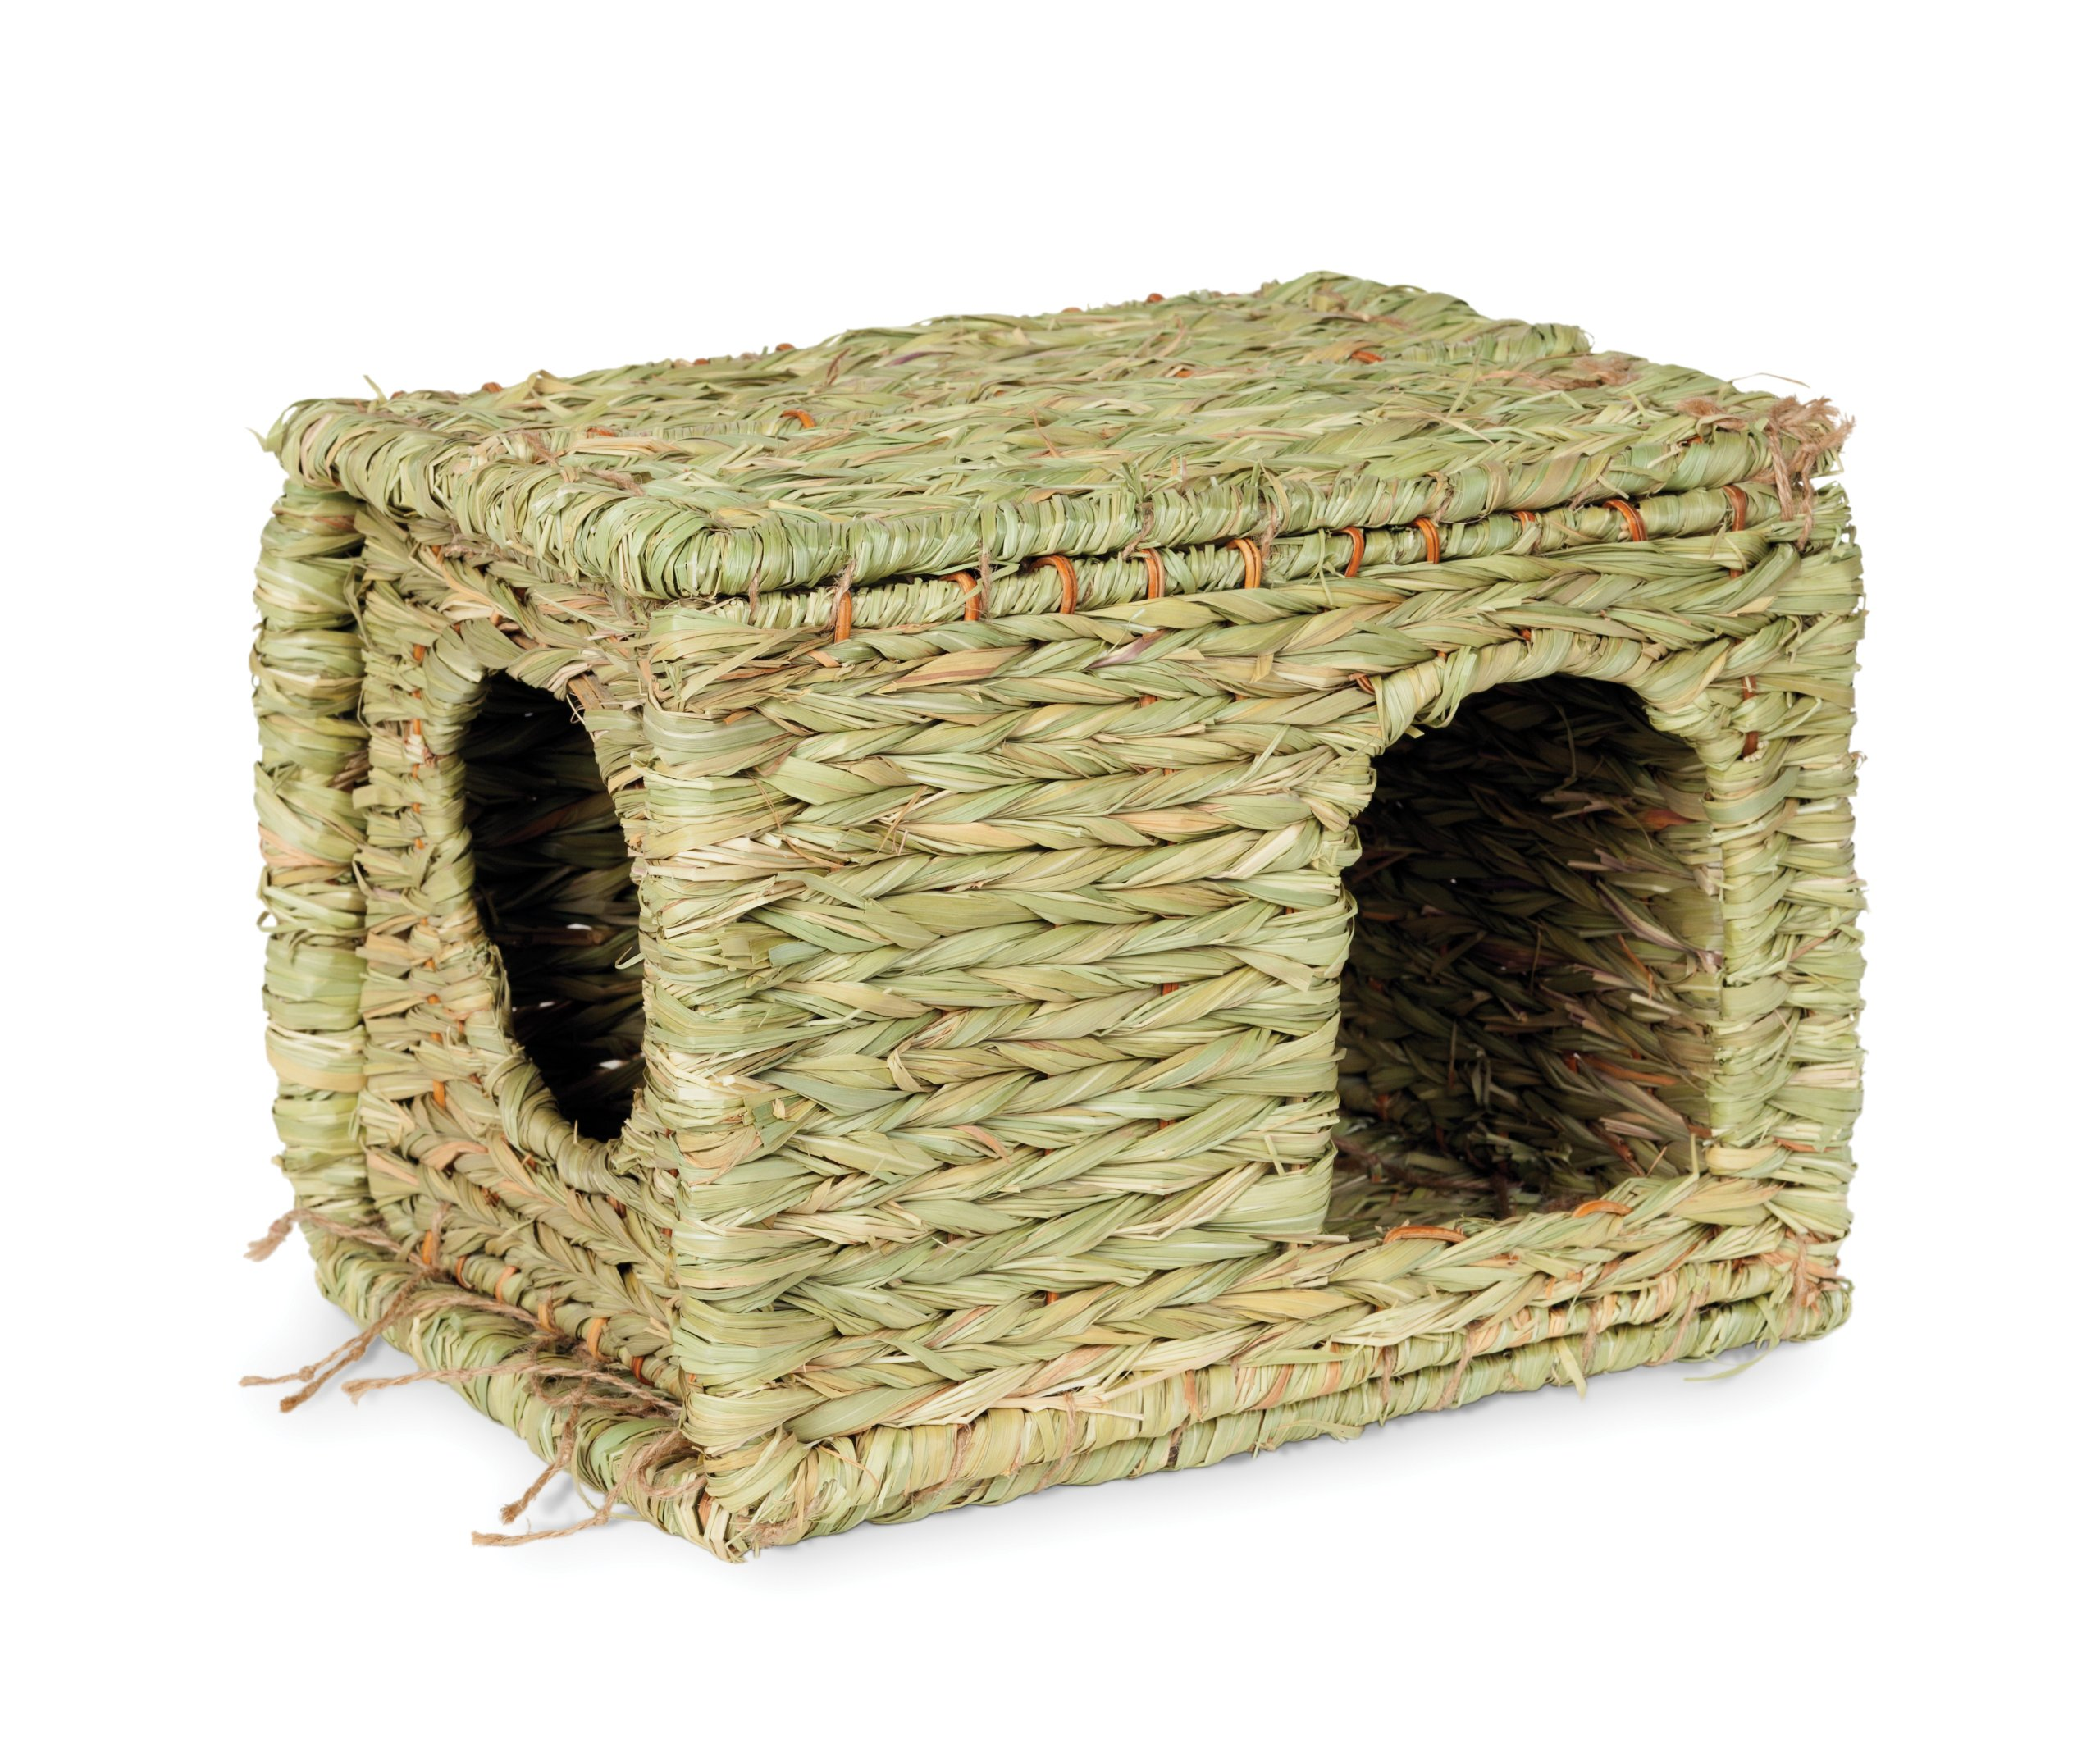 Prevue Hendryx 1100 Nature's Hideaway Grass Couch Toy by Prevue Hendryx